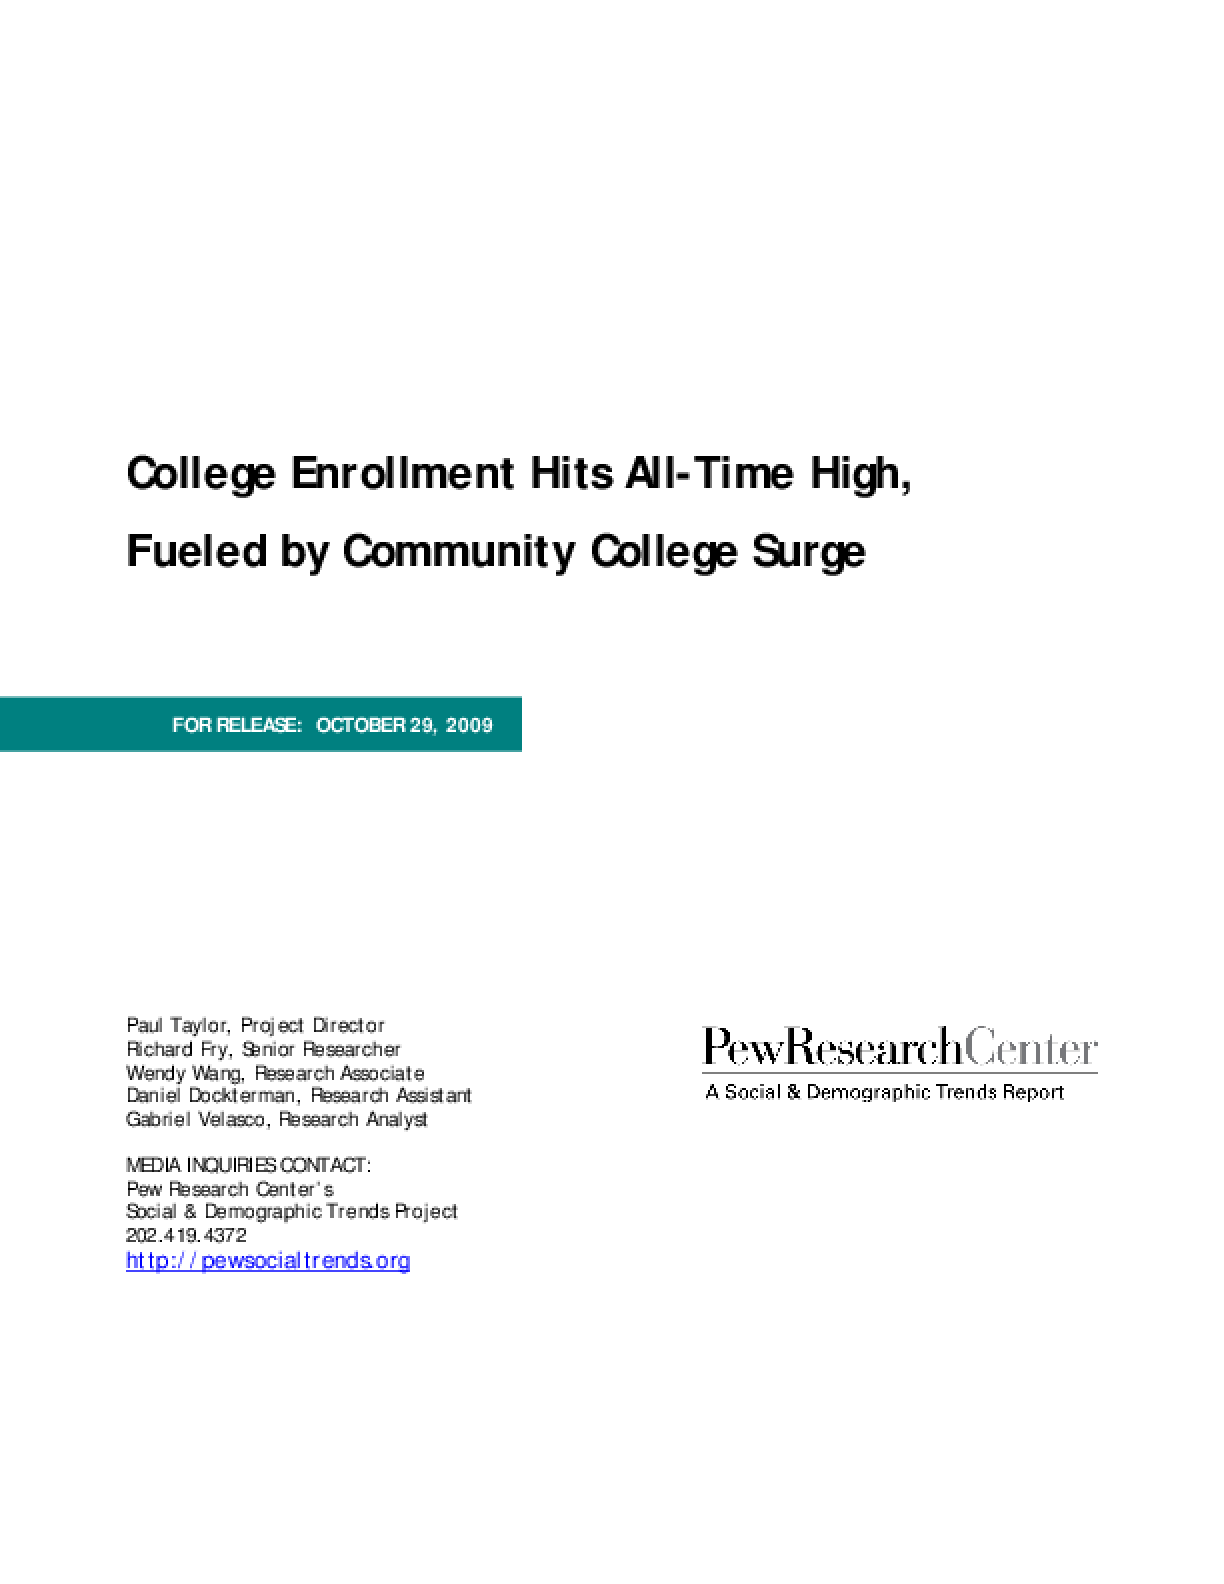 College Enrollment Hits All-Time High, Fueled by Community College Surge